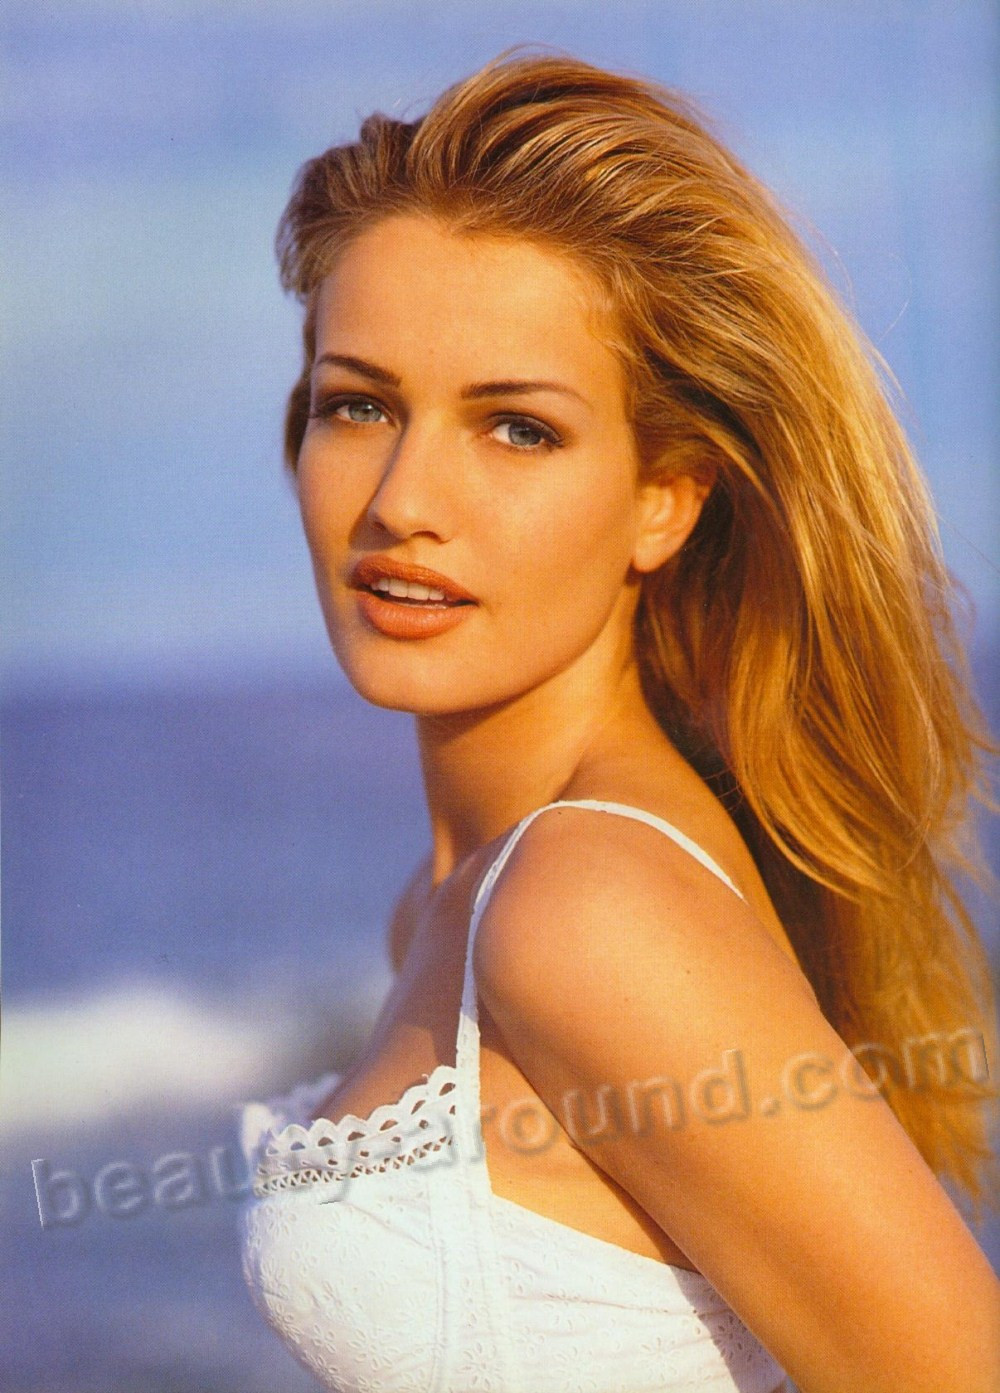 Beautiful Dutch Women. Karen Mulder Dutch singer and former model. photo